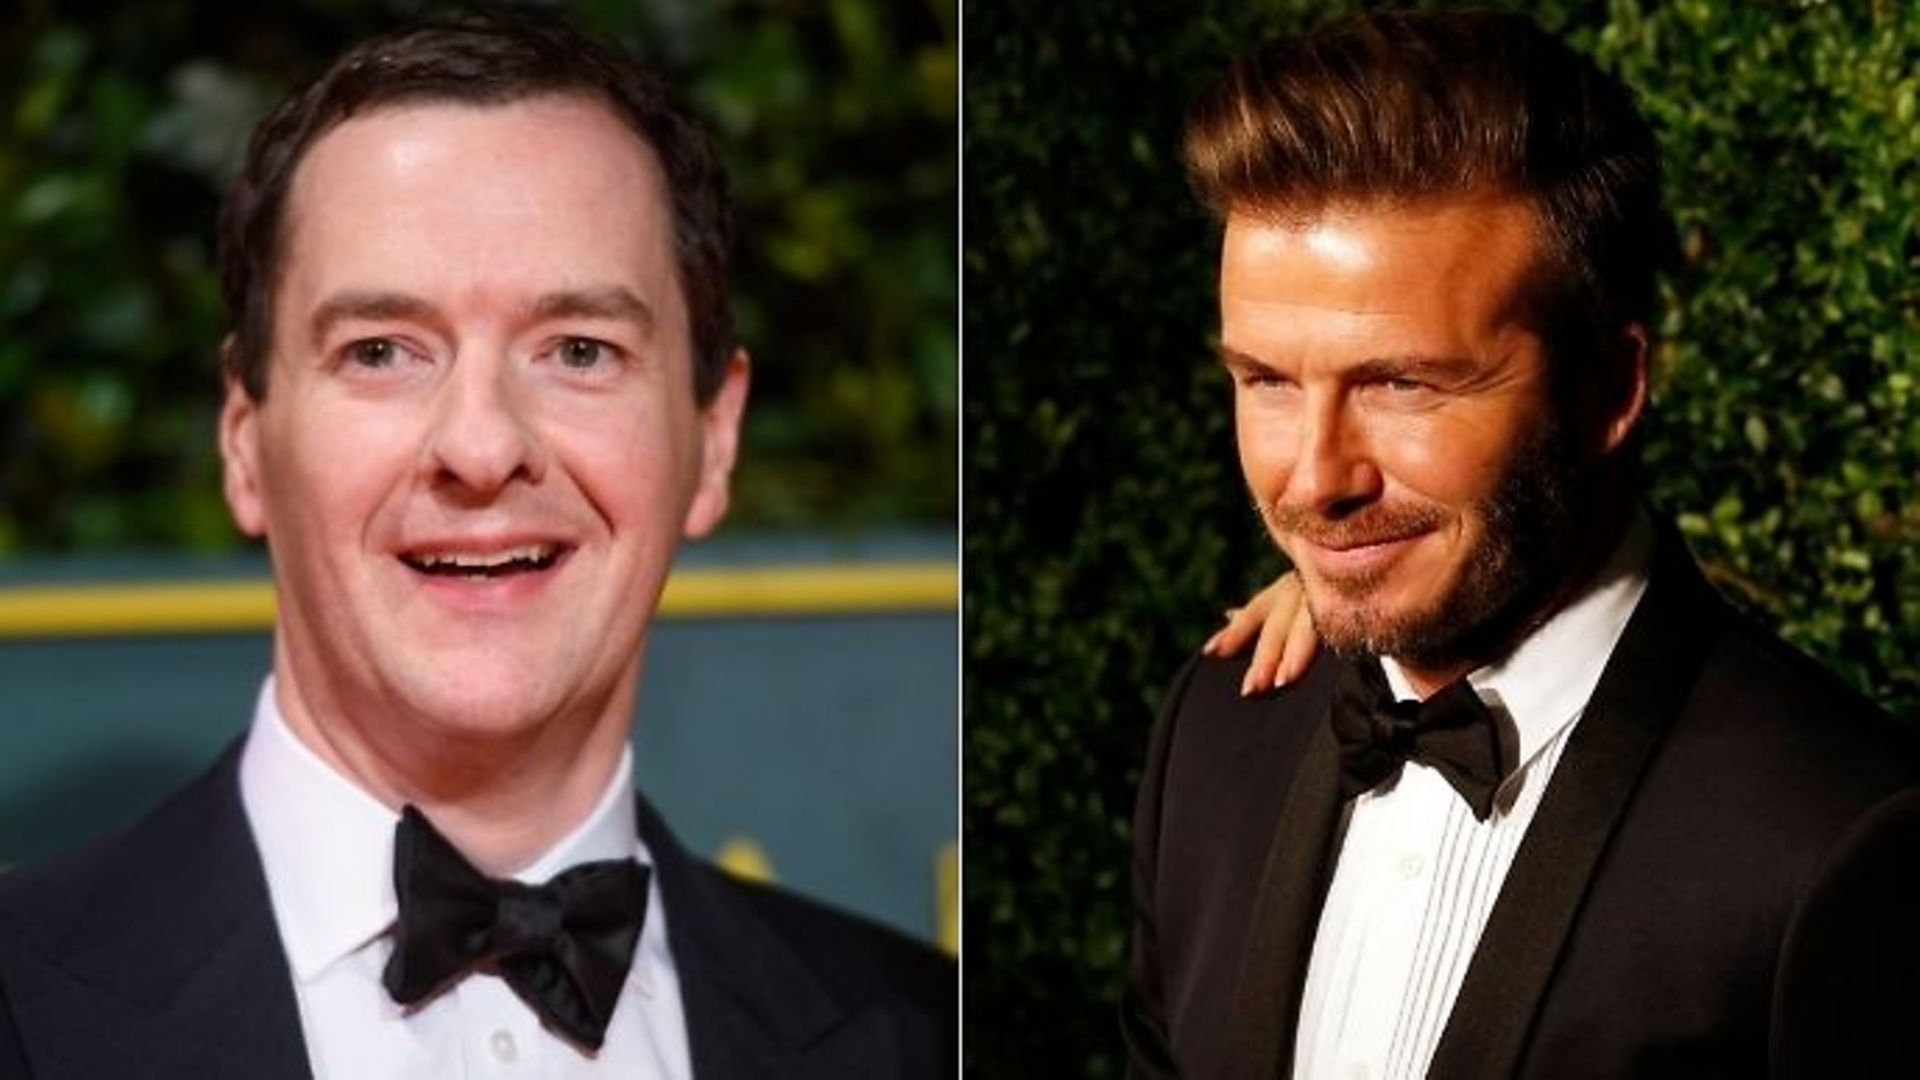 George Osborne (L) had considered giving retired England footballer David Beckham (R) a ministerial post when he was chancellor of the exchequer - Credit: PA